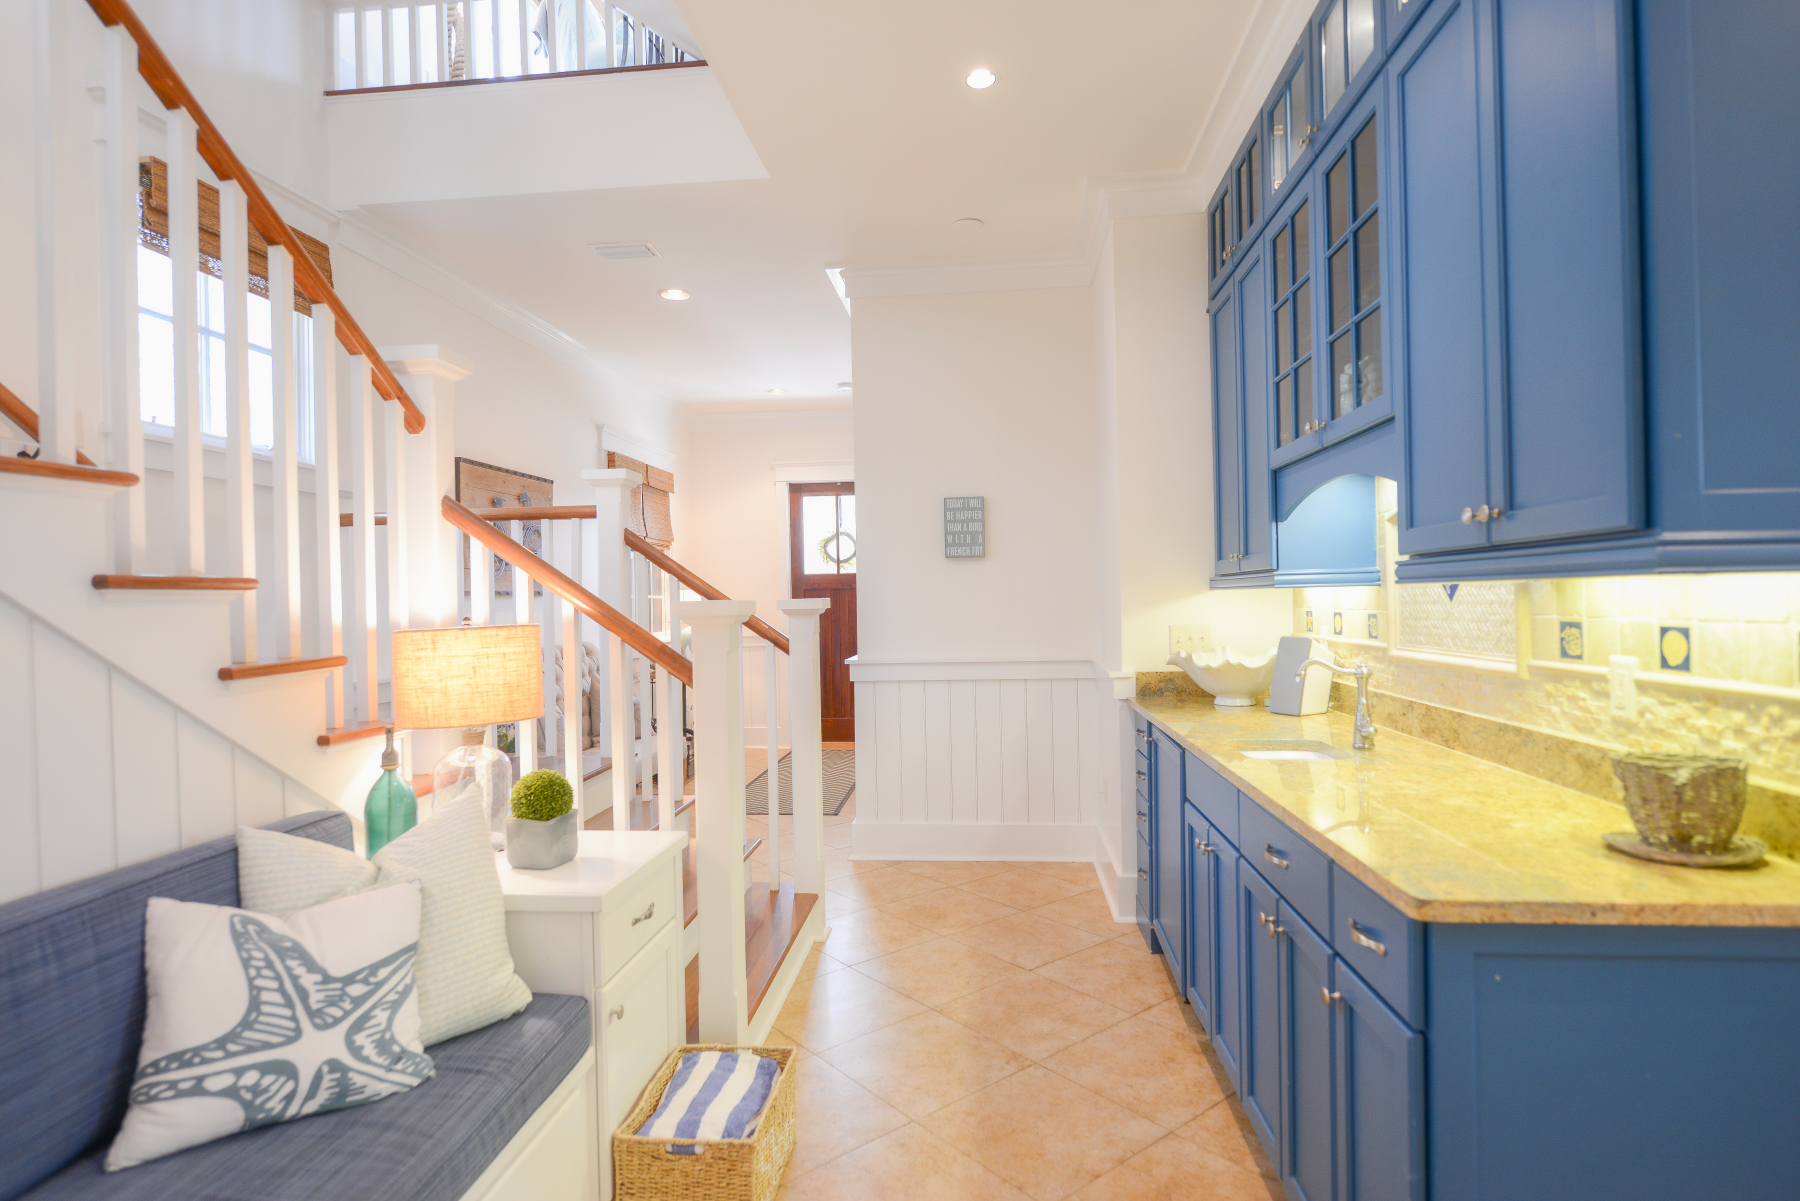 Watercolor florida beach house front entry kitchenette.jpeg